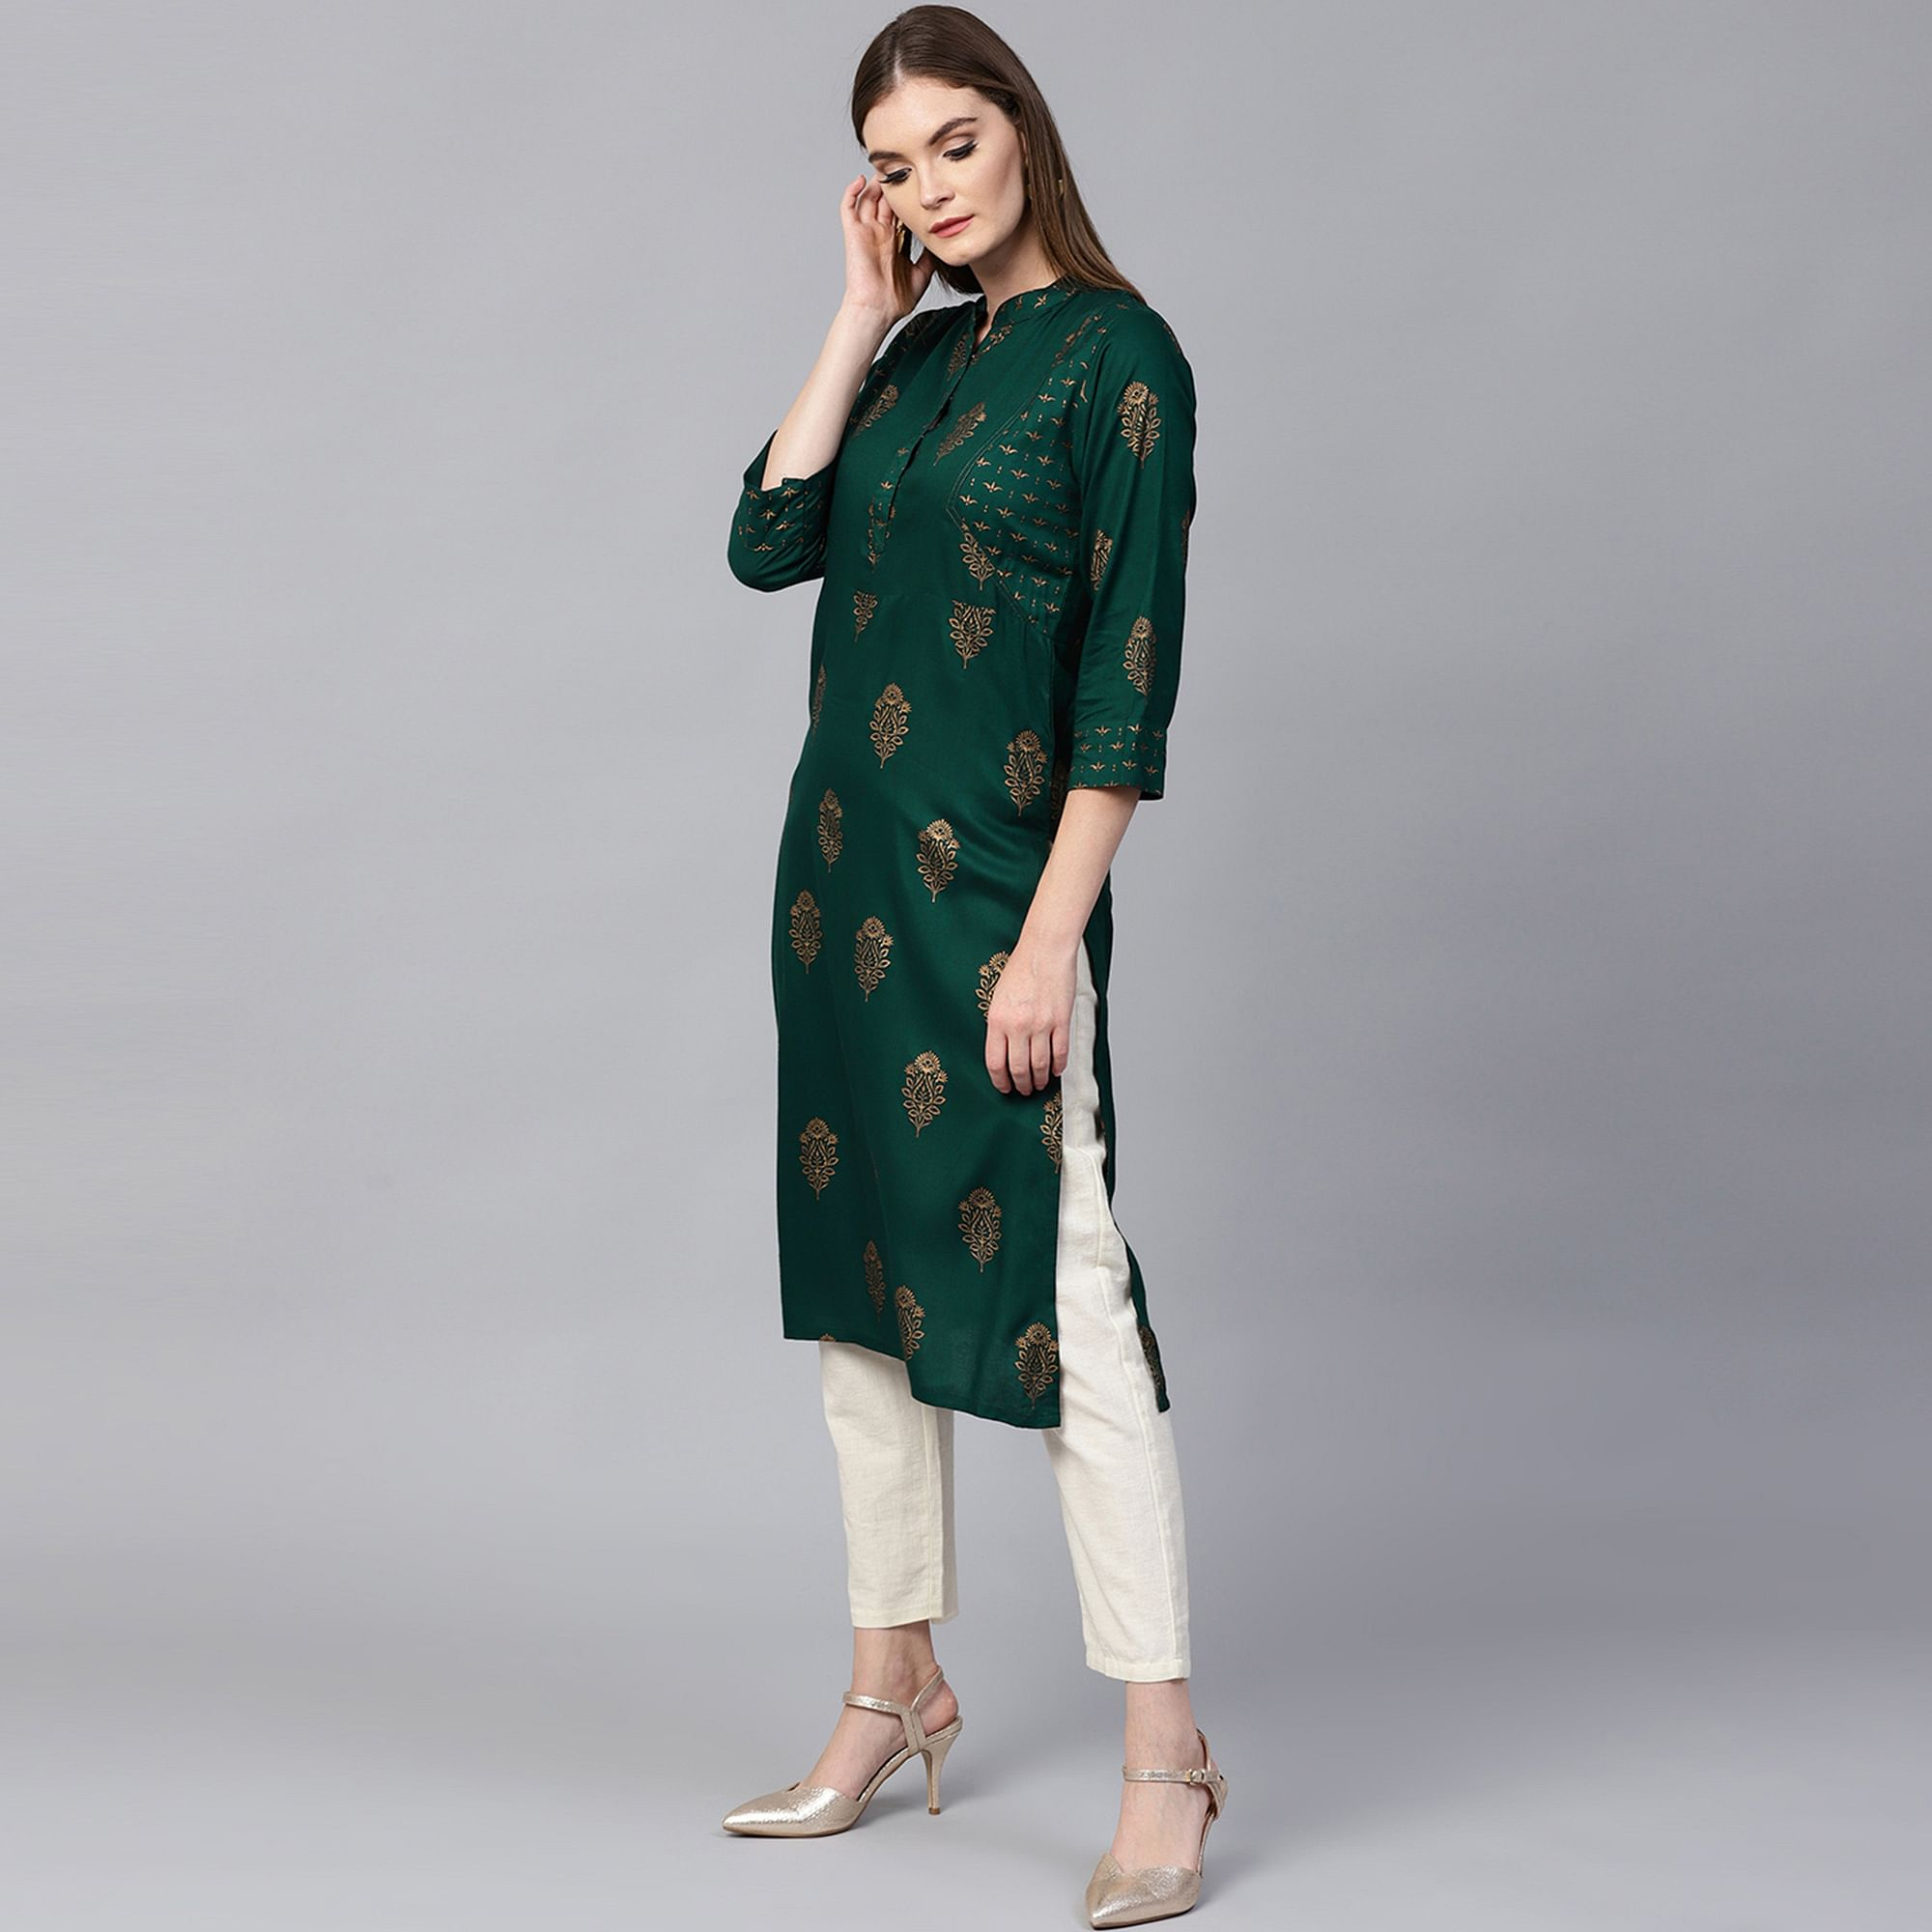 Adorable Green Colored Party Wear Foil Printed Viscose-Rayon Kurti